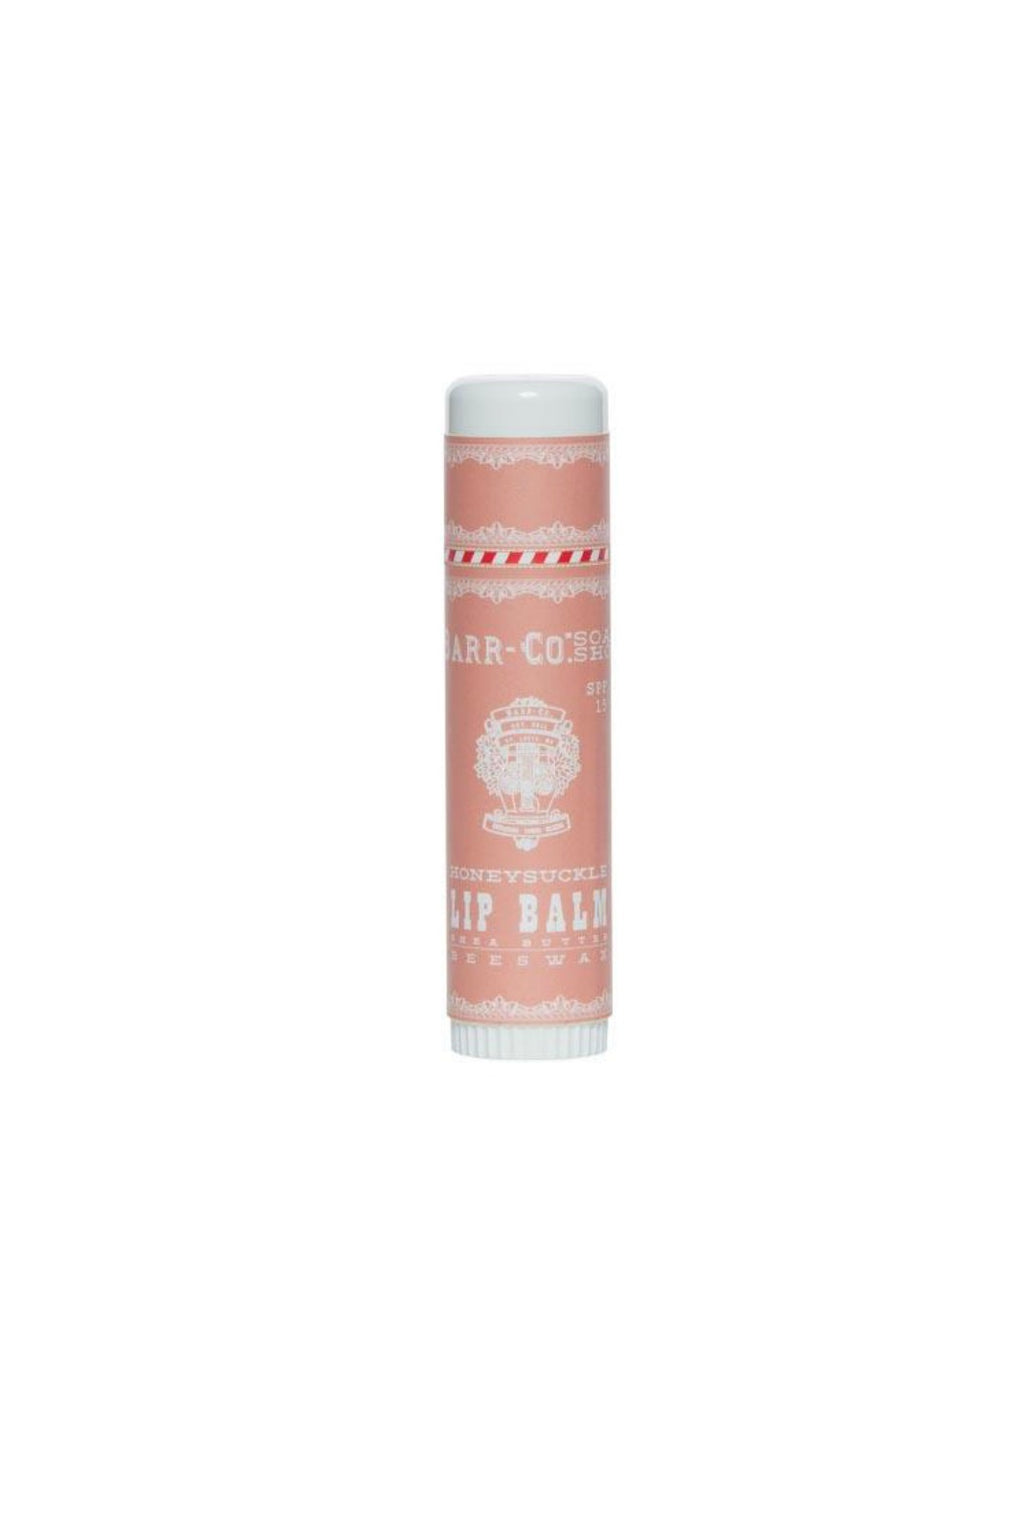 Barr-Co. Lip Balm - Honeysuckle